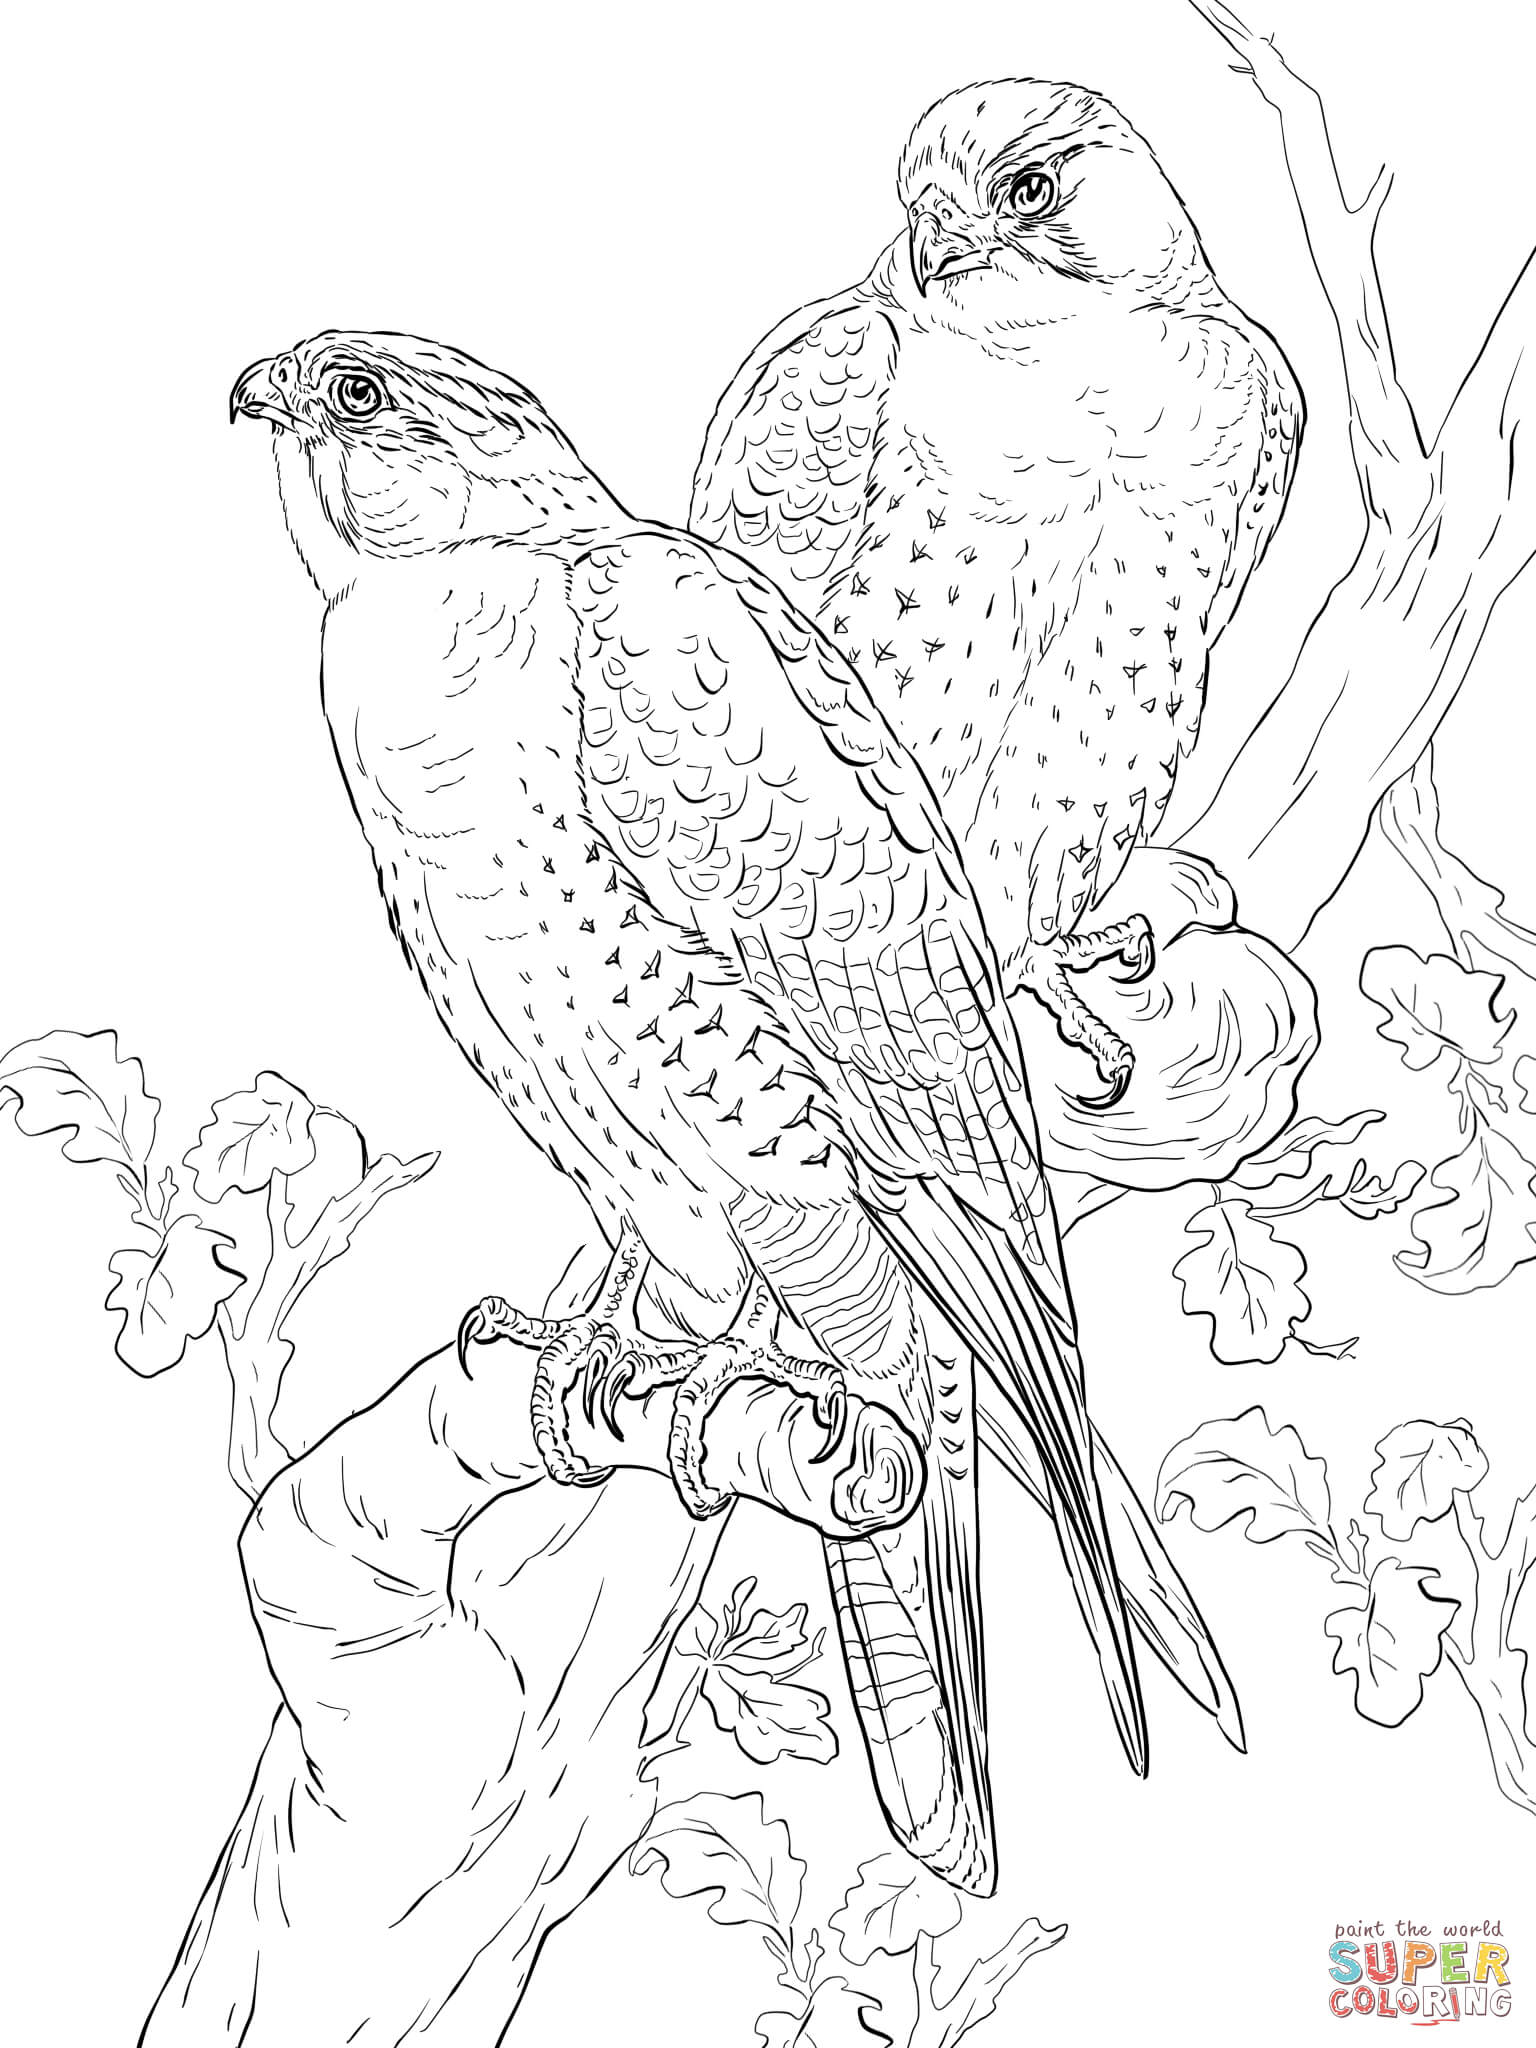 Peregrine Falcon coloring #20, Download drawings